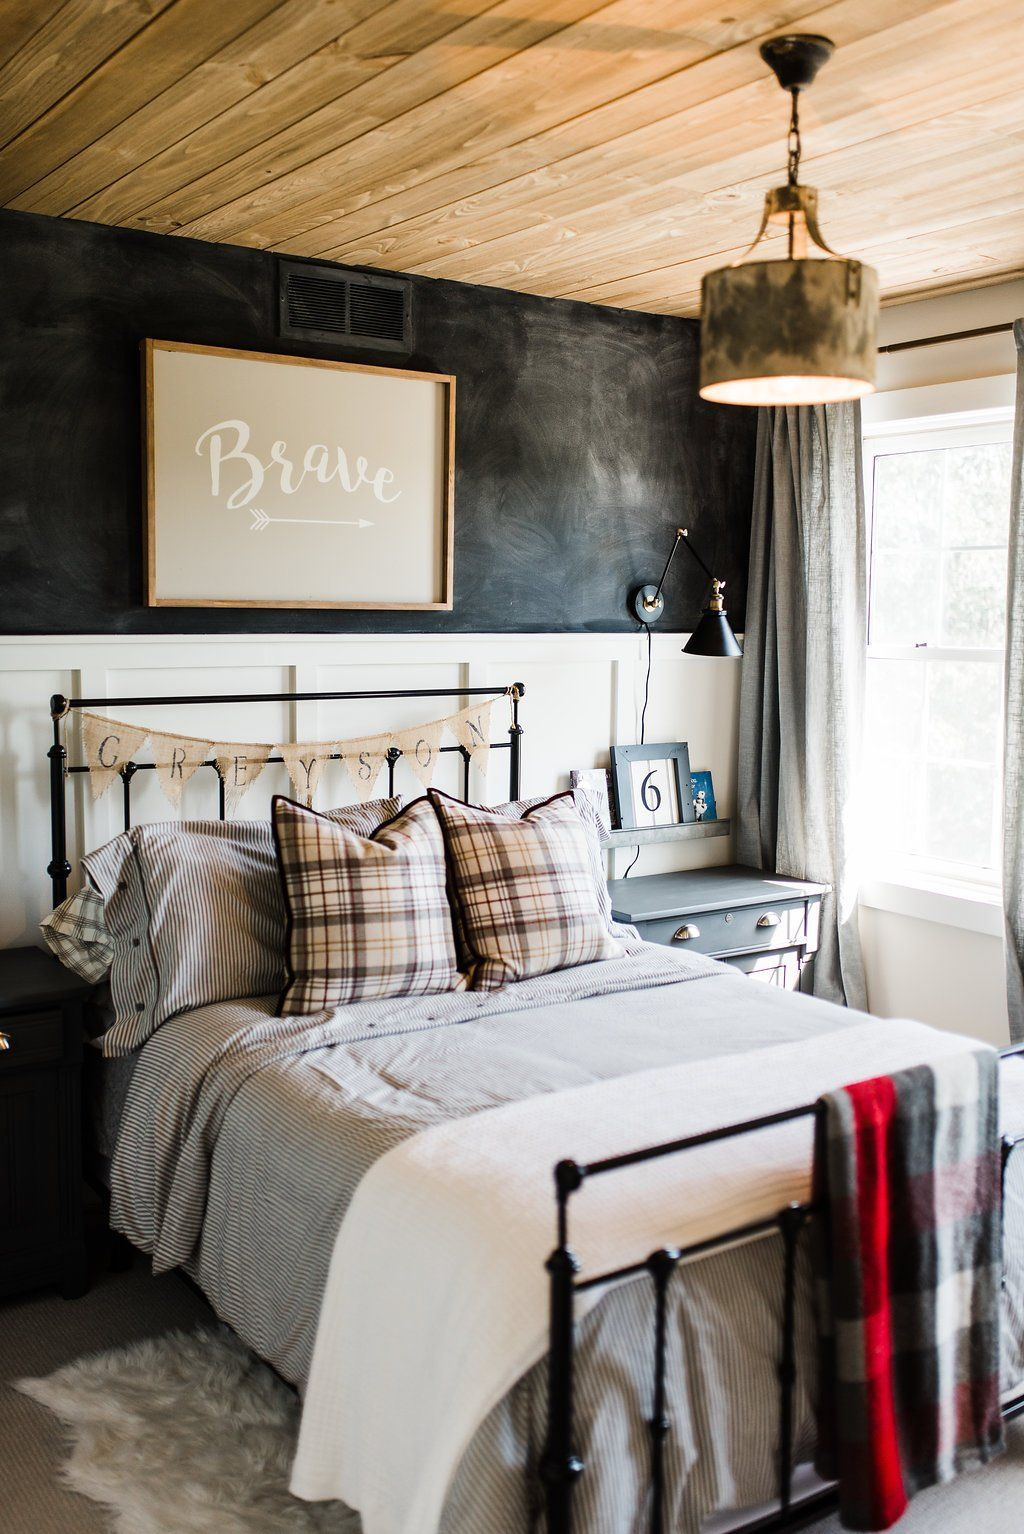 21+ Cool and Modern Teen Bedroom Ideas images